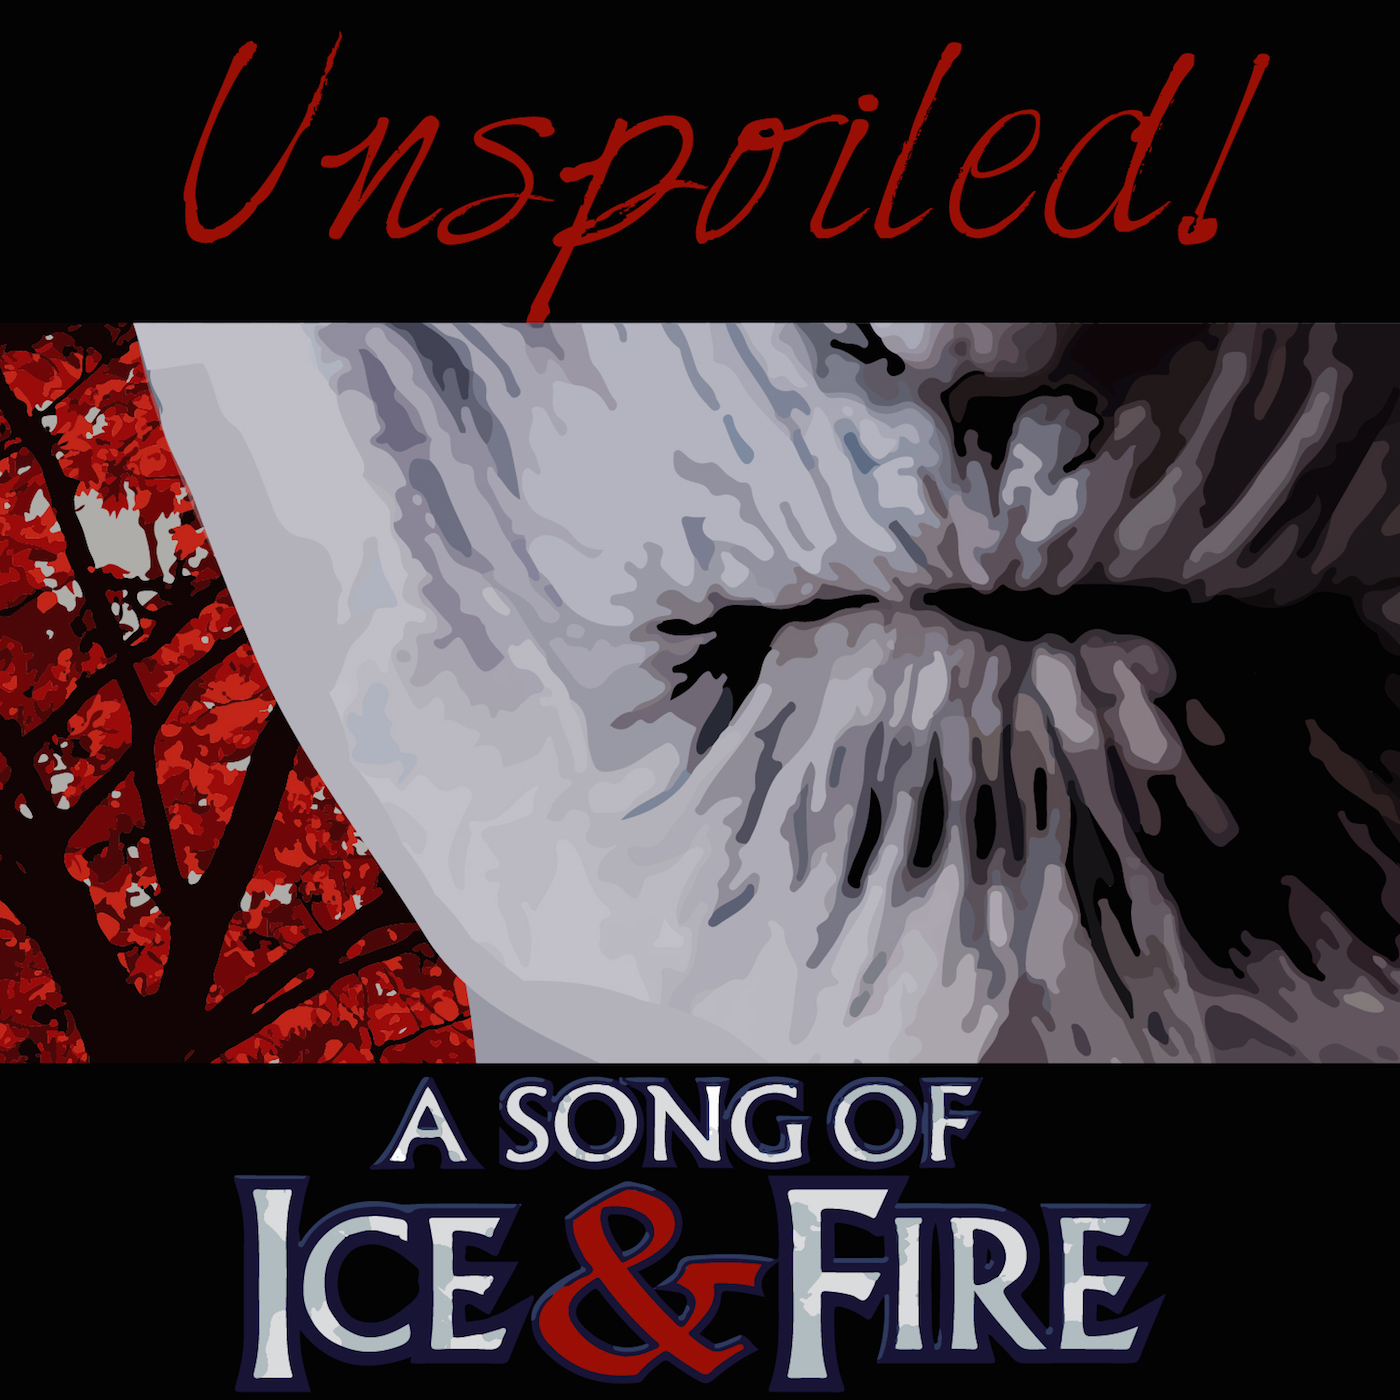 unspoiled a song of ice and fire listen via radio on  a song of ice and fire listen via radio on demand